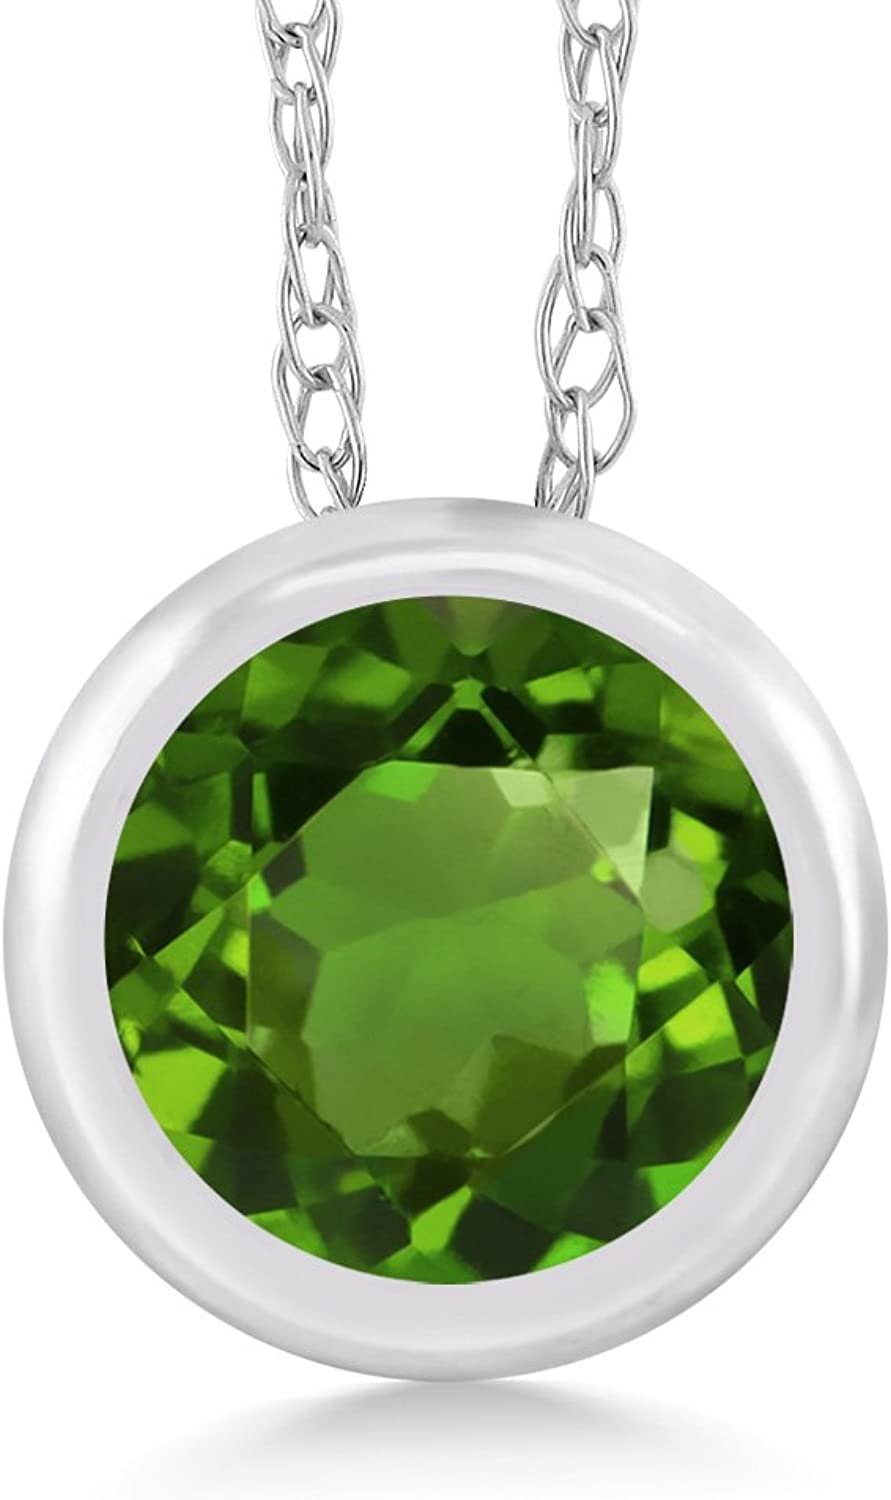 0.50 Ct Round Green Chrome Diopside 14K White gold Pendant With Chain